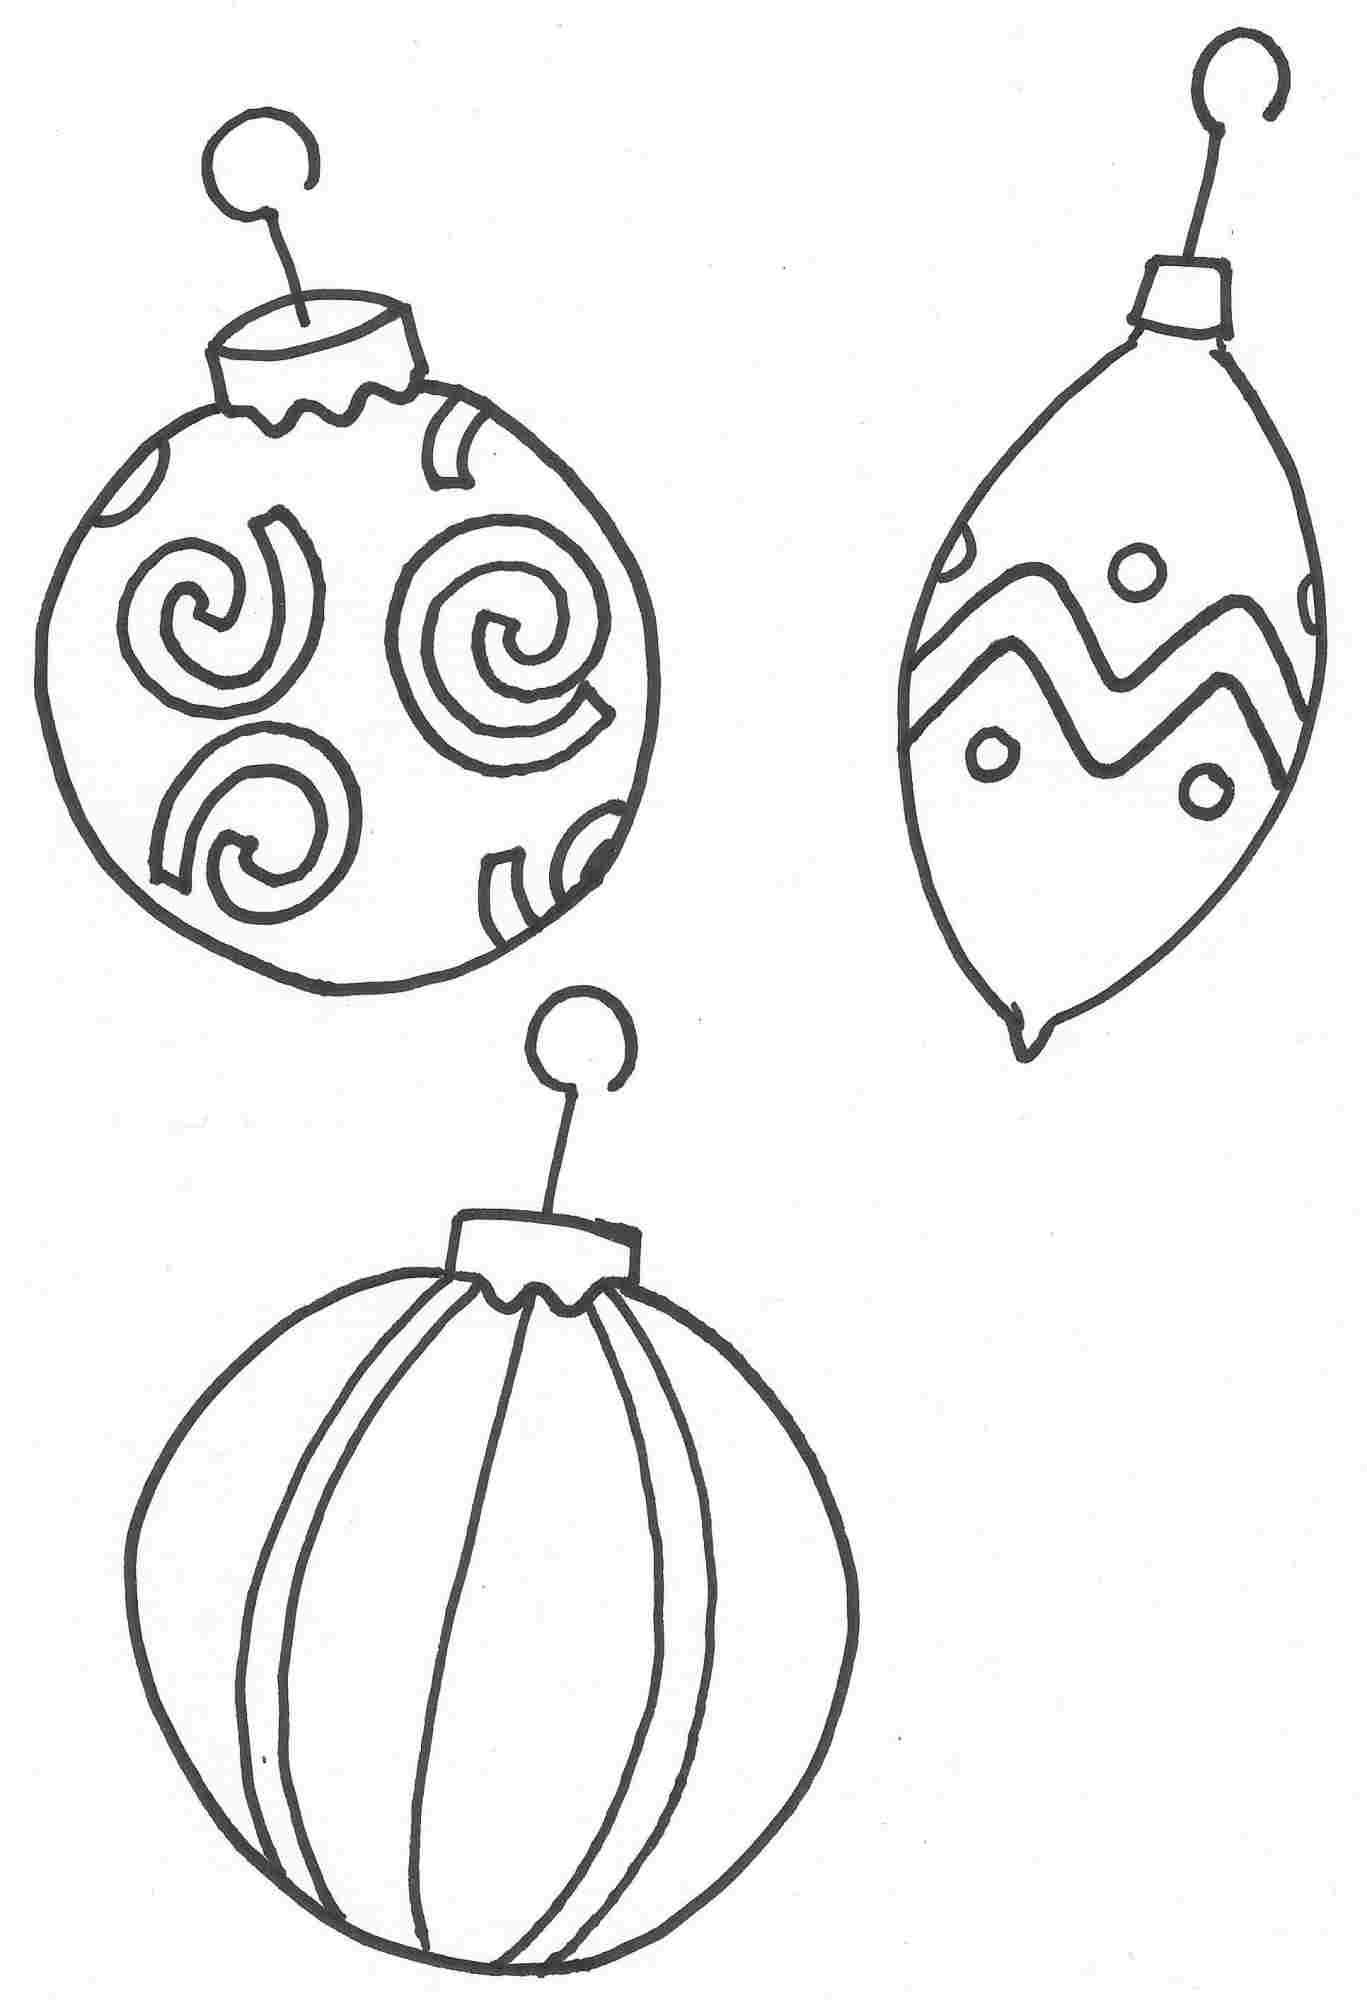 Coloring sheet | Coloring books | Pinterest